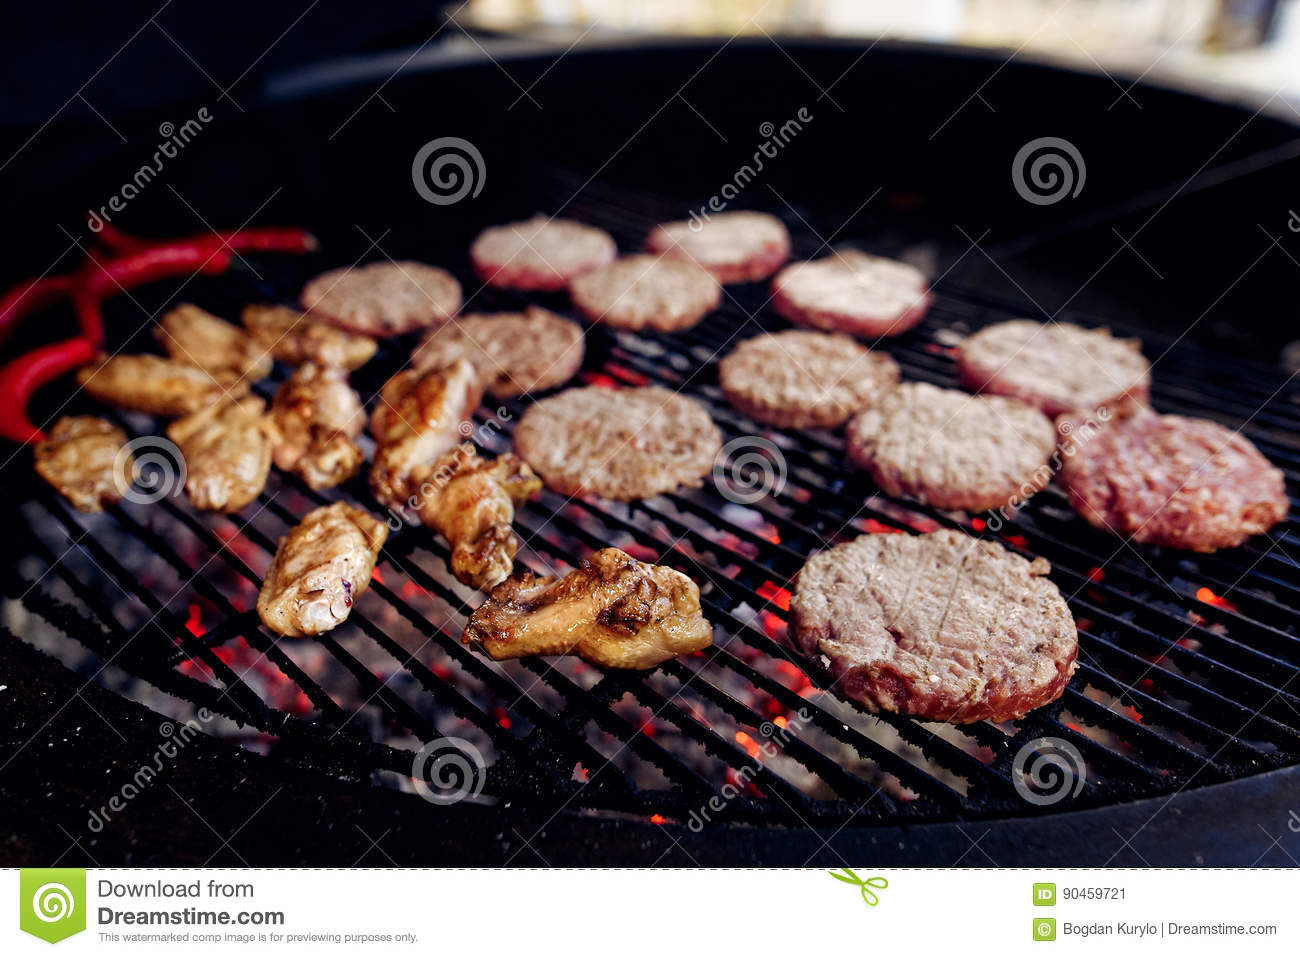 Pork meat and chicken cutlets with pepper grilling for burgers.